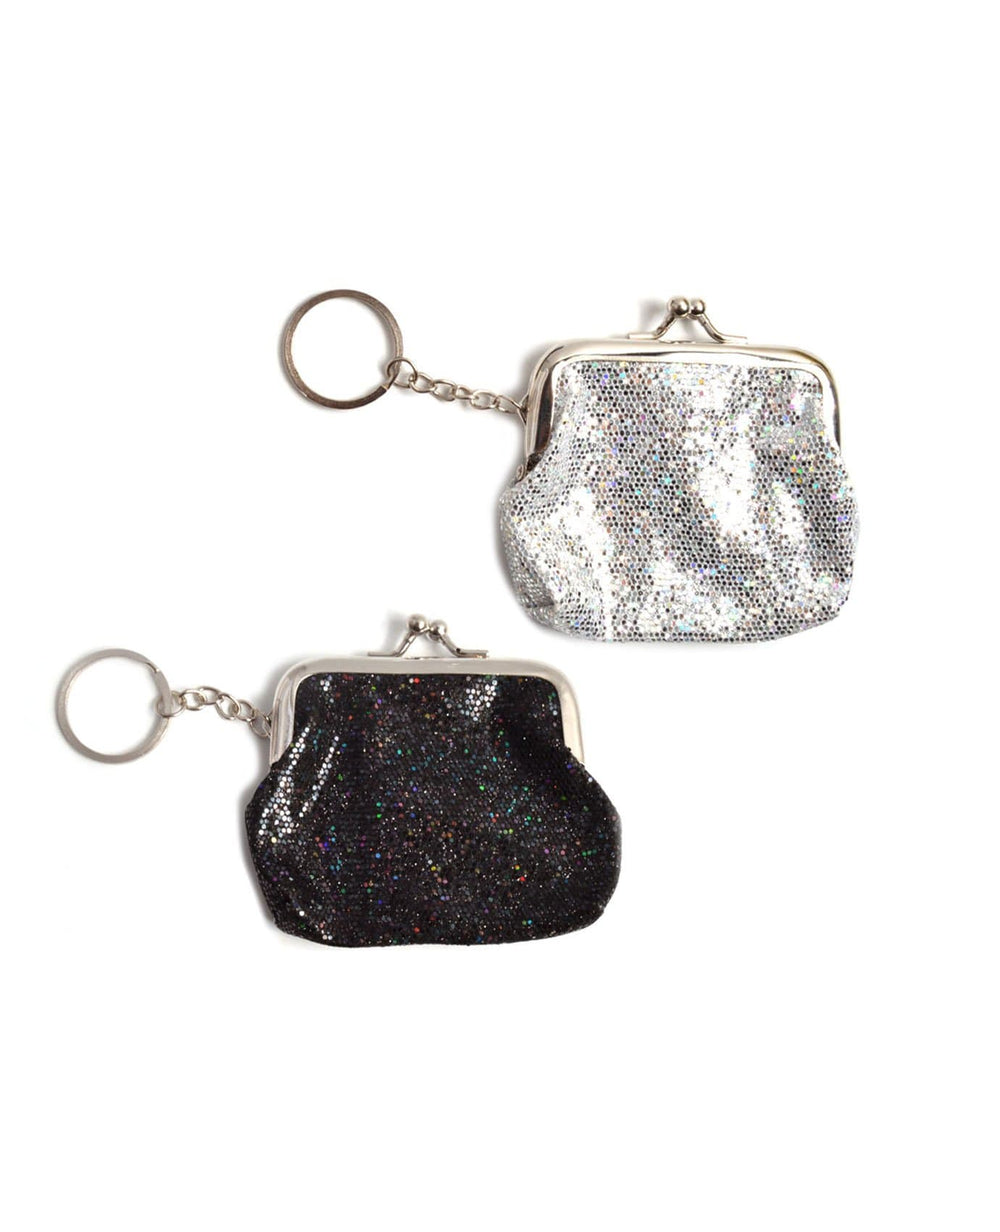 Fun Night Out Coin Purse